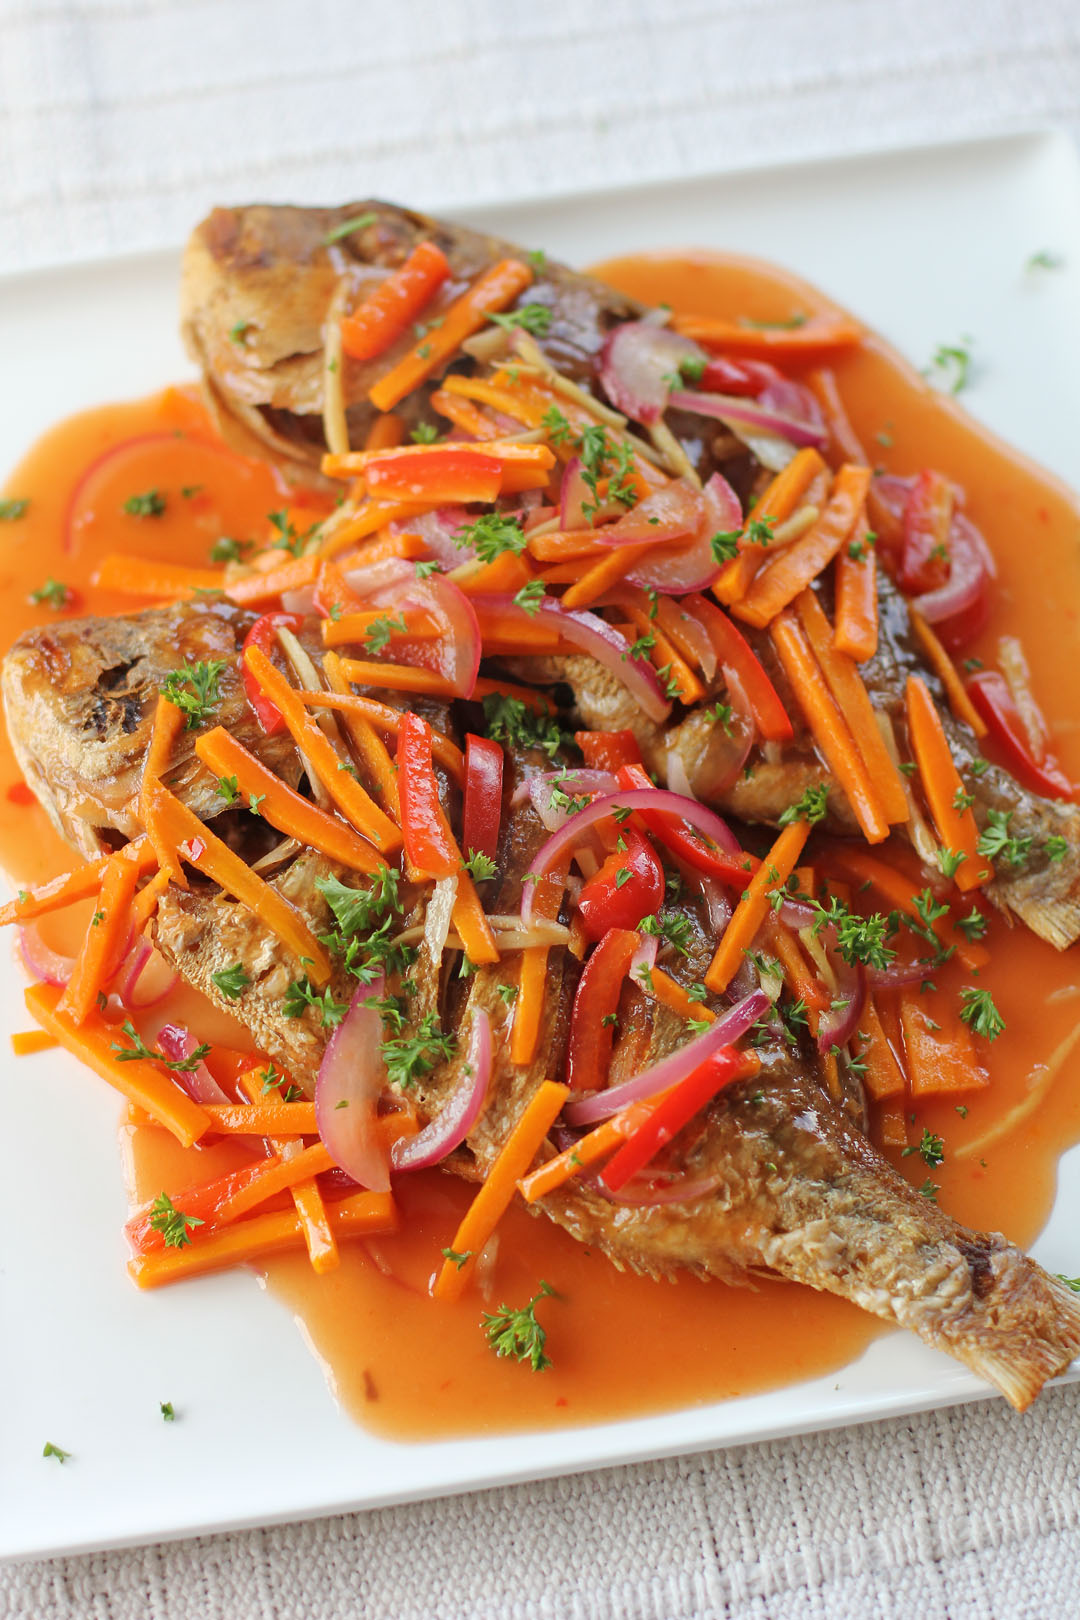 Escabeche ang sarap for Fish escabeche recipe